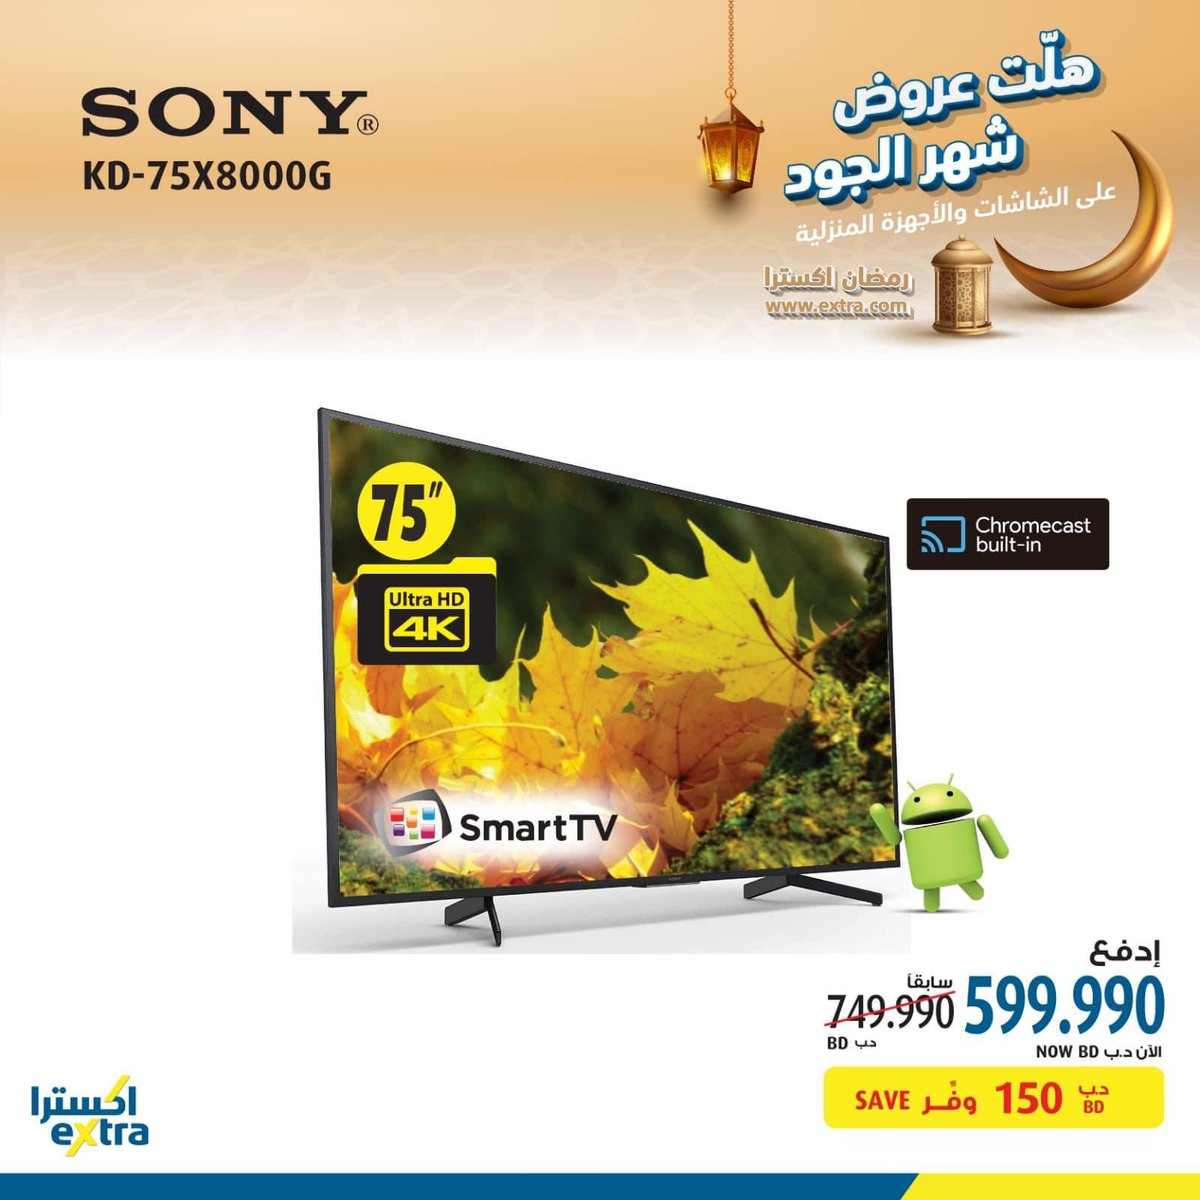 Let's mark this coming occasion with this magnificent TELEVISION offer from Generousity Month Promotion starting from 26th of March until 15th of April, 2020. Our store is closed. To shop online kindly click link http://www.extra.com/en-bh/pic.twitter.com/DHLrmSzKoV